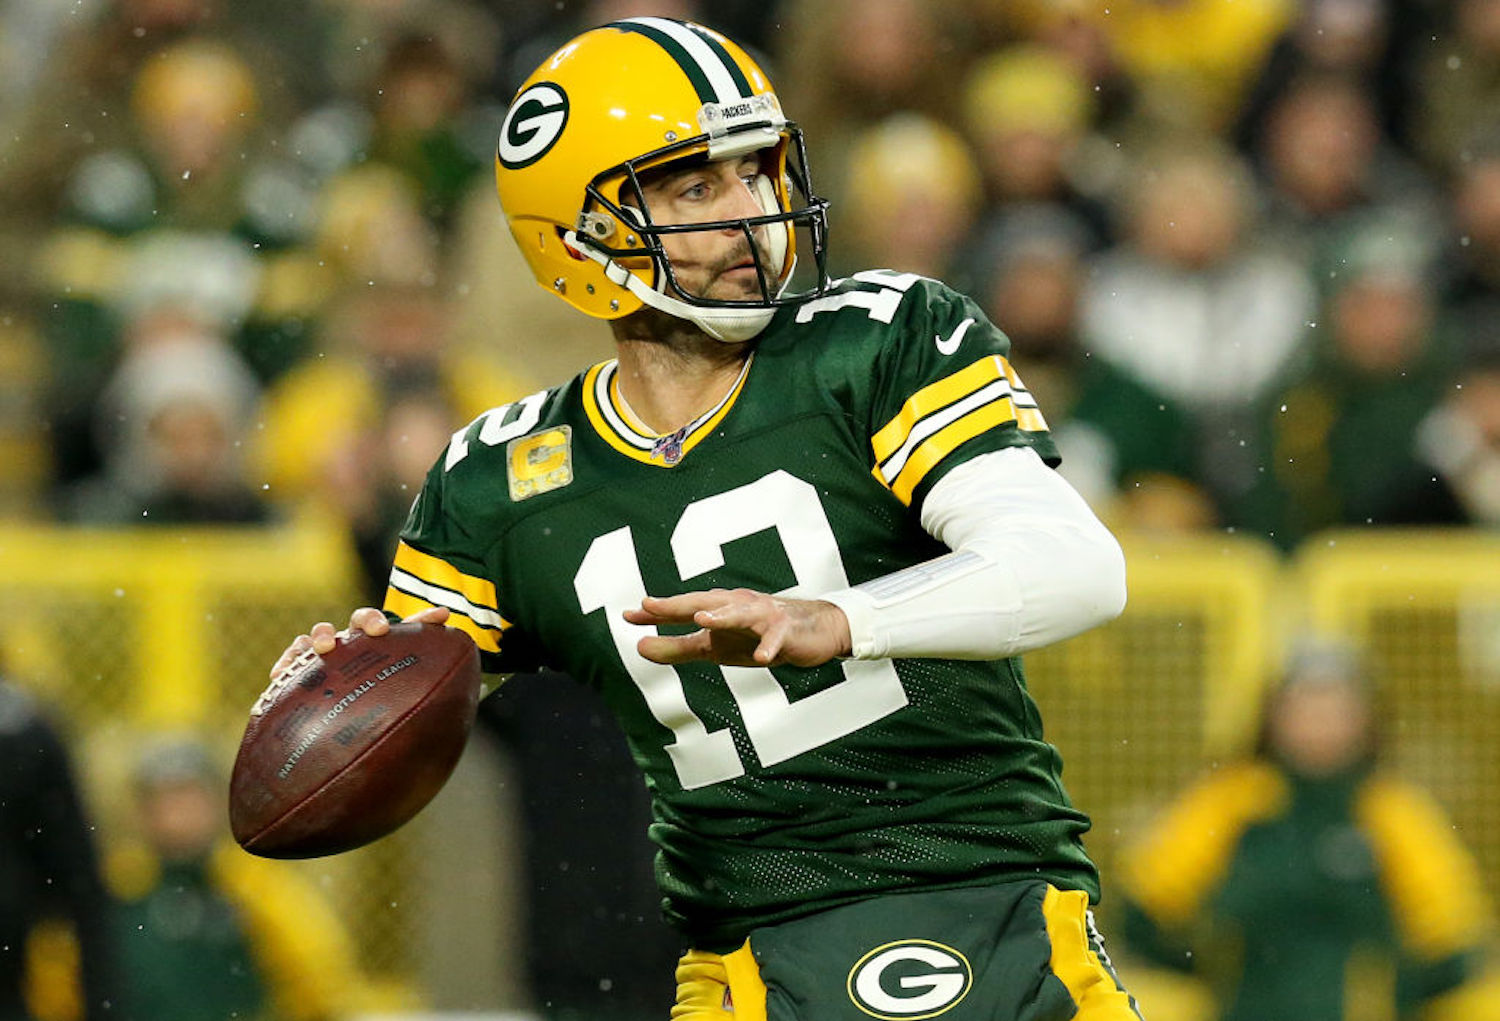 Aaron Rodgers has multiple Hail Marys to his name, and he recently revealed his secret to completing the most impossible pass in football.